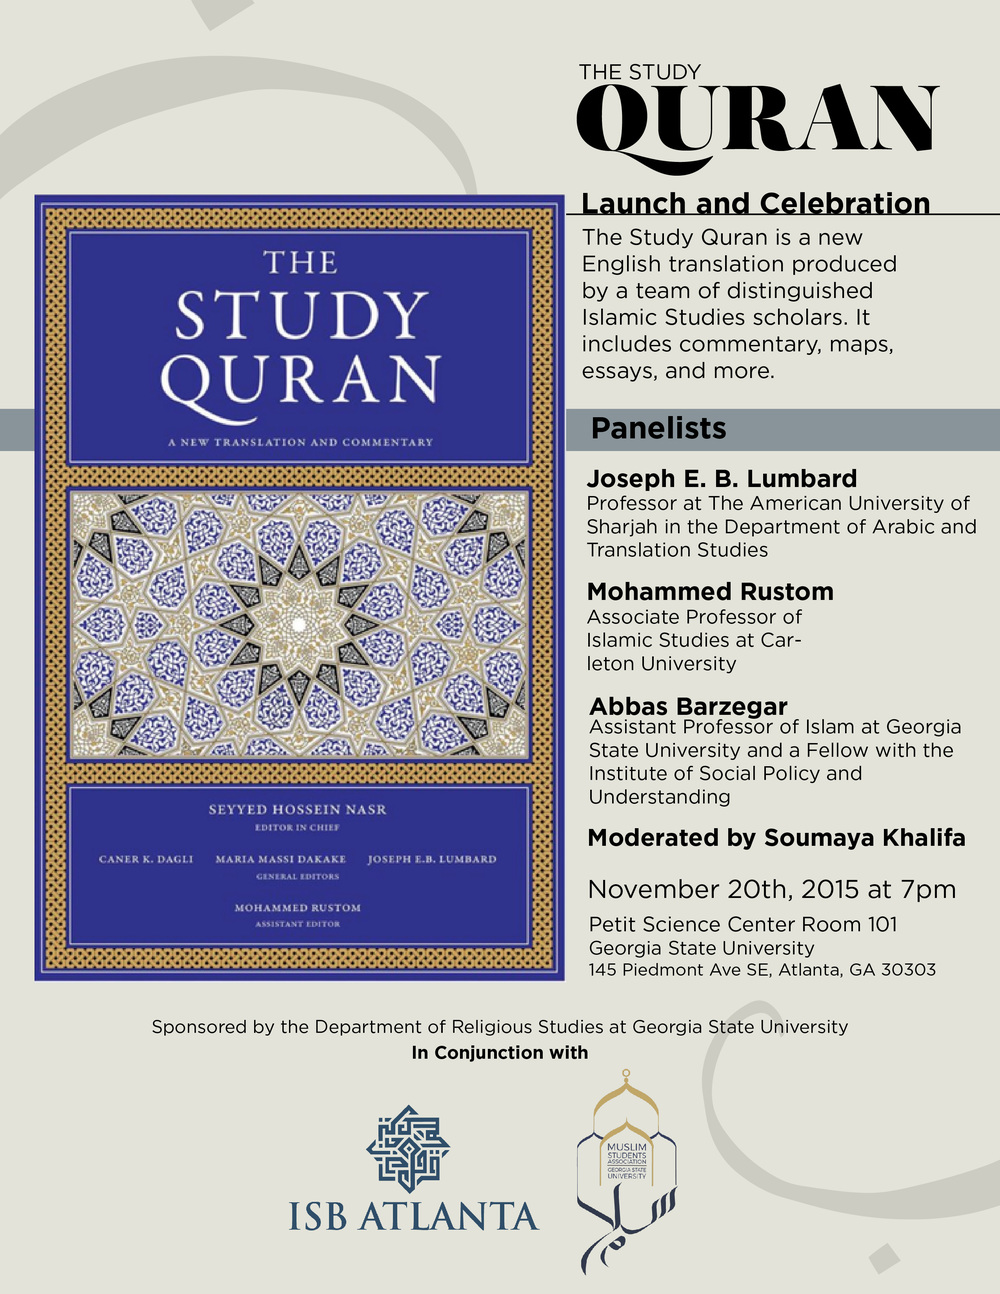 the study quran launch and celebration muslim students the study quran is a new english translation produced by a team of distinguished islamic studies scholars it includes commentary maps essays and more